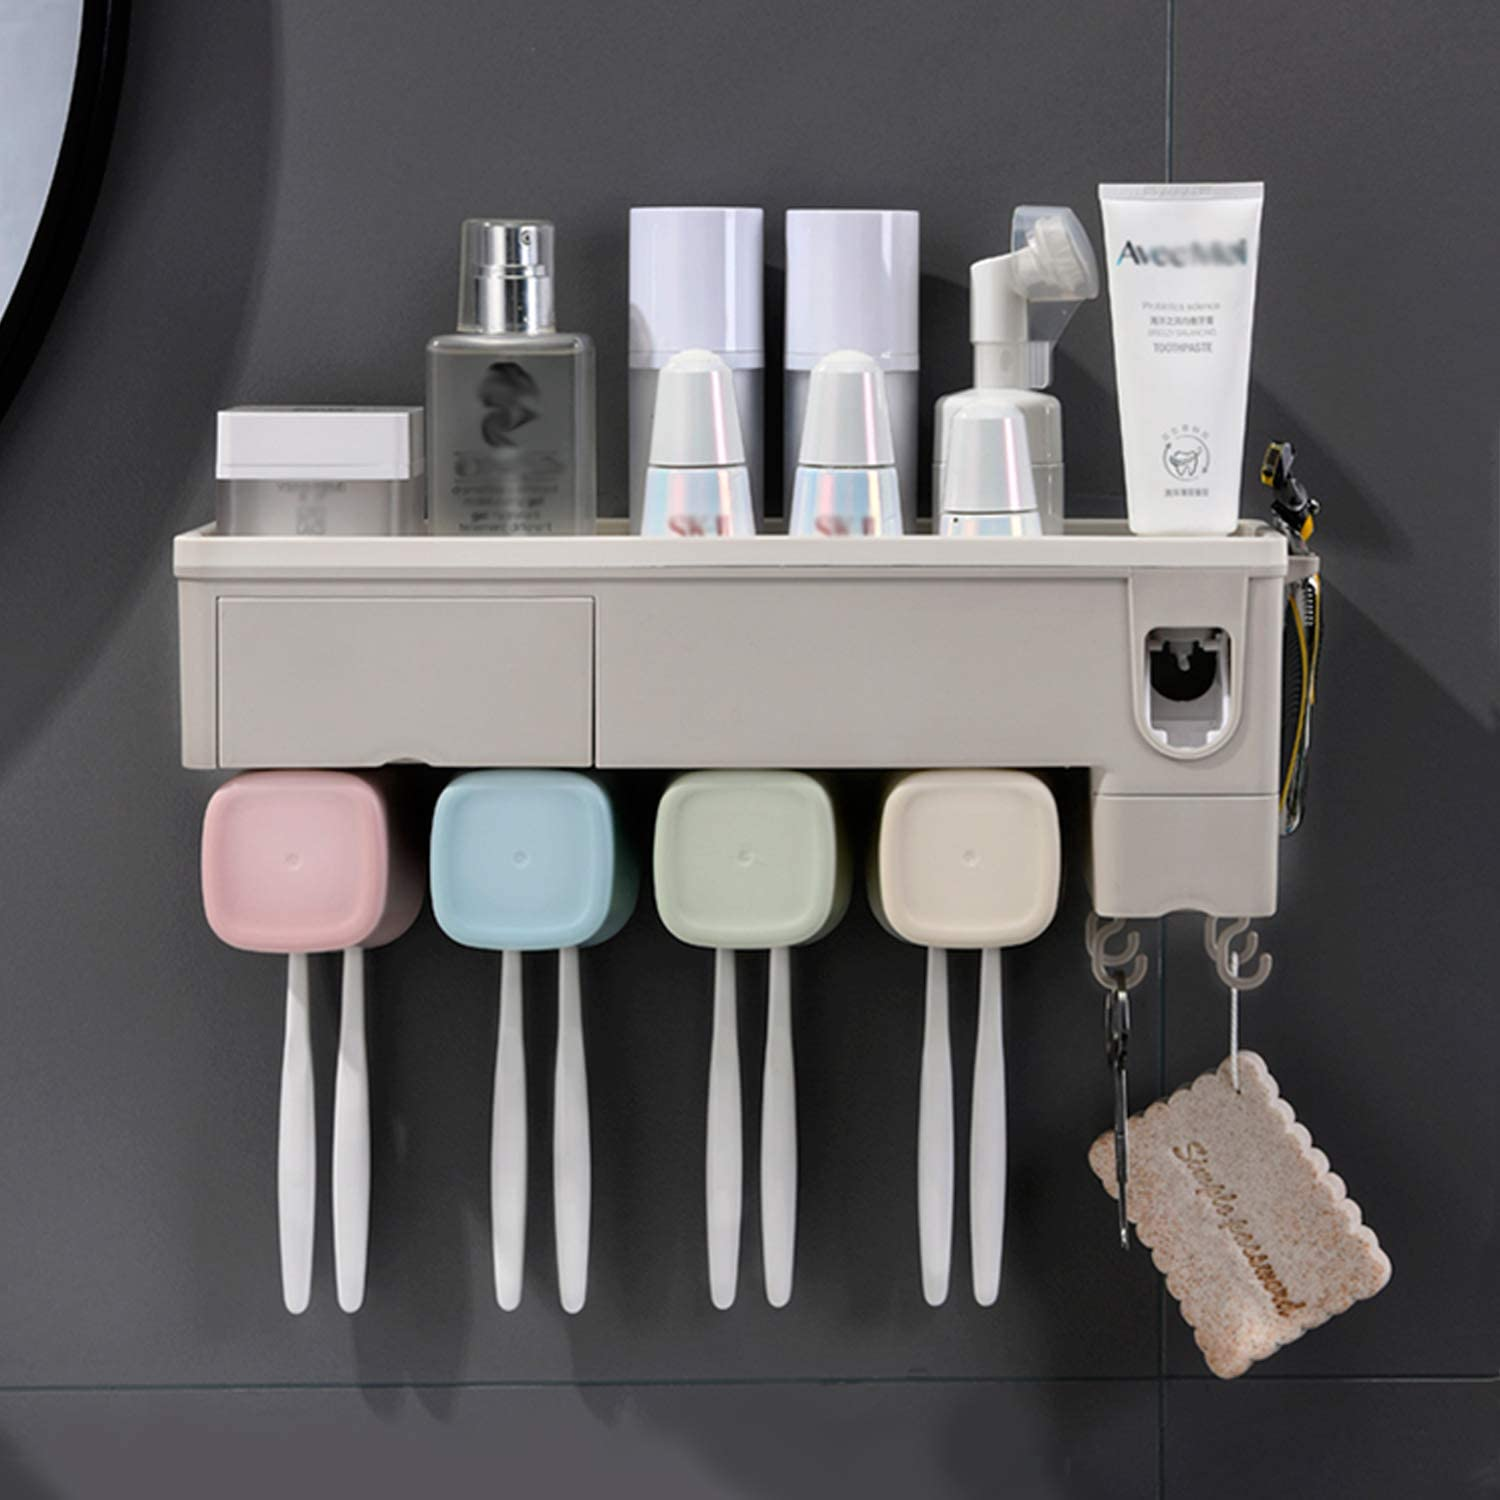 WREWING Single Cup Toothbrush Holder 1 Pack Multifunctional Wall-Mounted Toothbrush Holder Automatic Toothpaste Squeezer Space Saving Bathroom Organizer